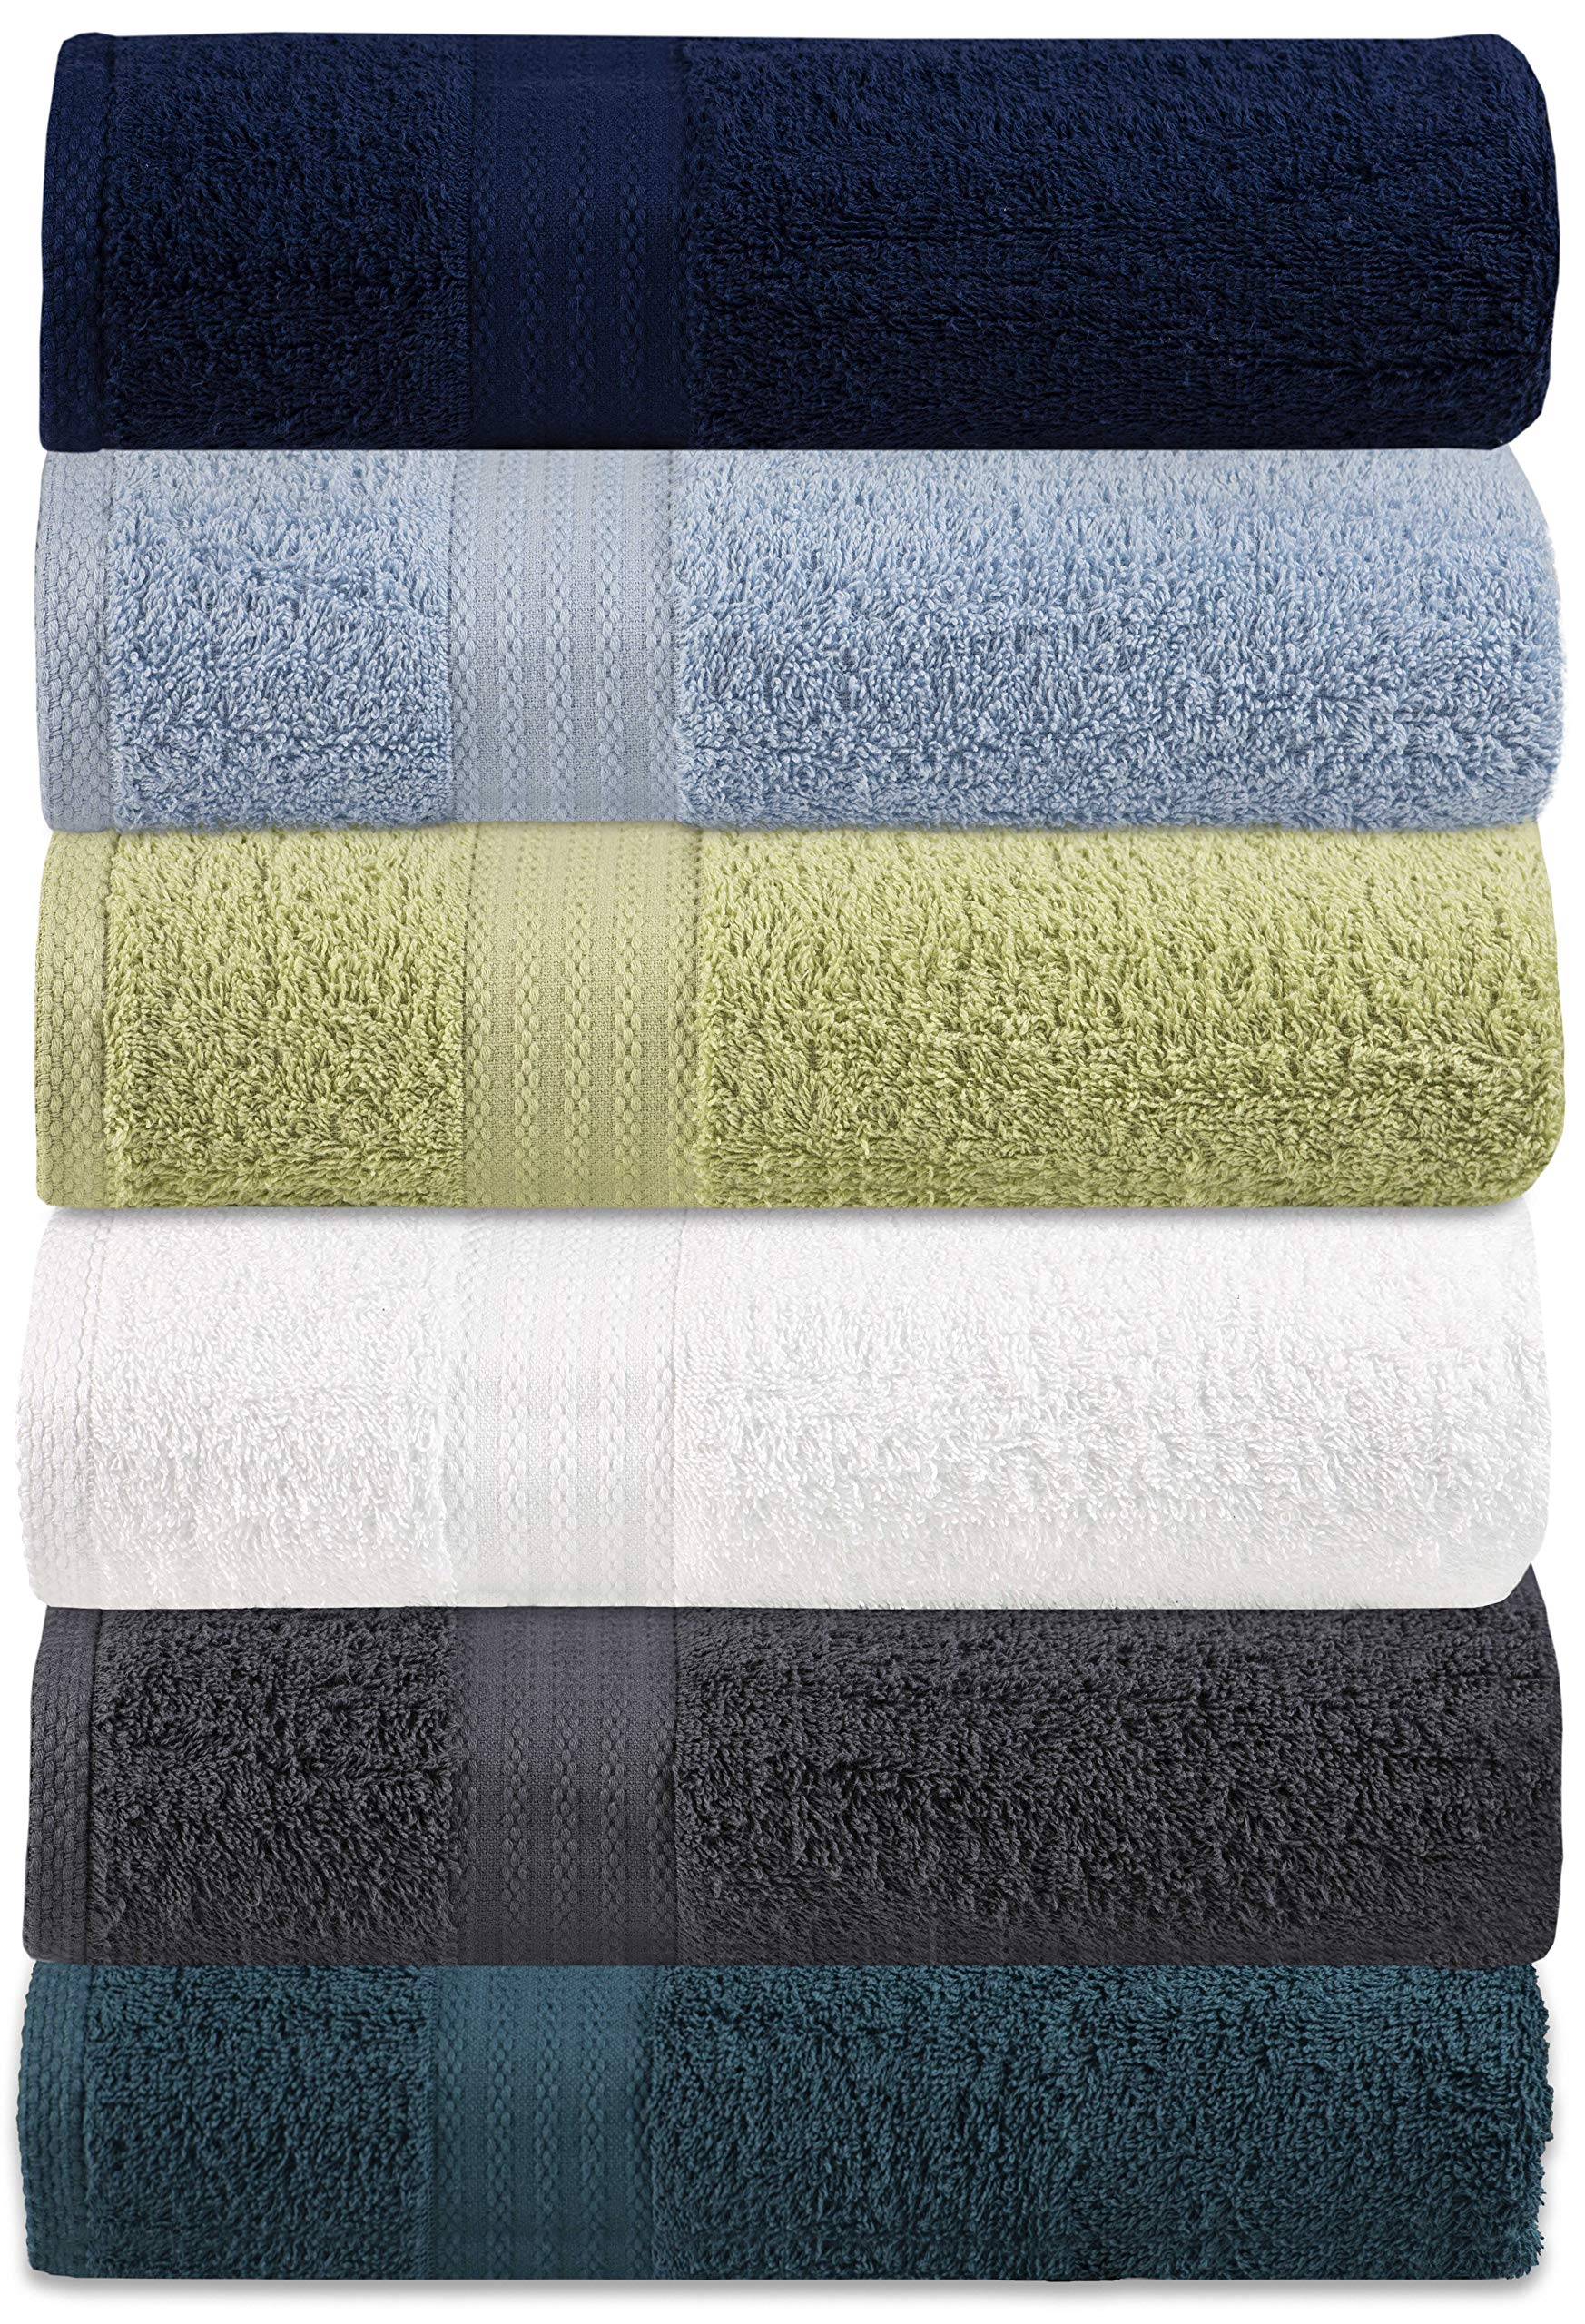 Glamburg 6 Pack Multi Color Bath Towel Set - 100% Pure Ringspun Cotton, 27x54 - Ideal for Everyday use, Quick Dry, Multipurpose - Highly Absorbent & Soft - Light Weight - Extraordinary Value Pack